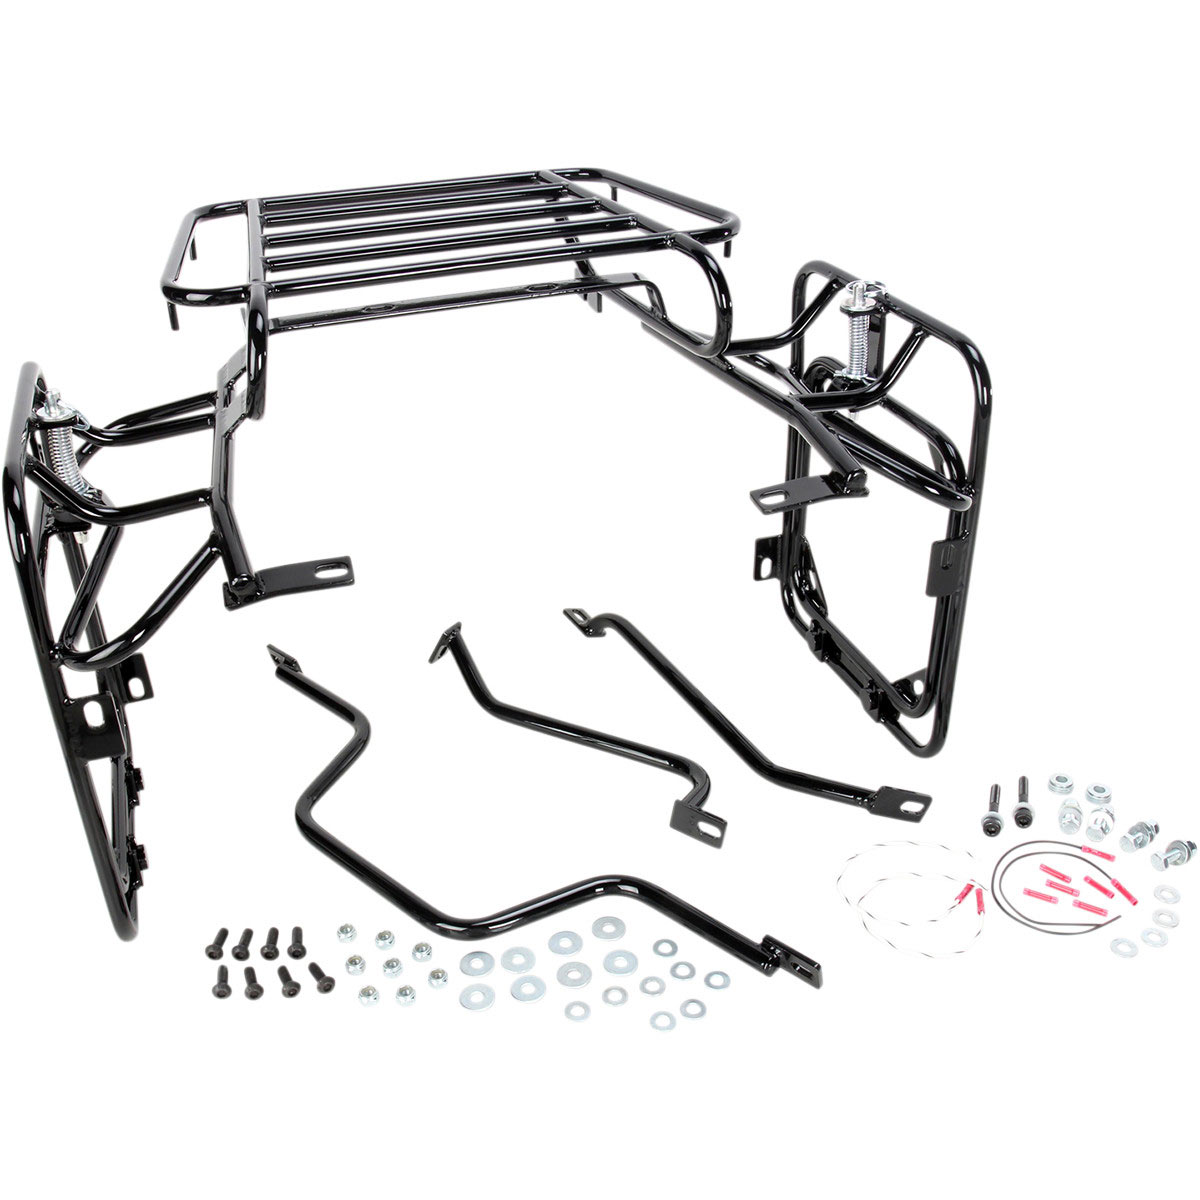 Moose Expedition Luggage Rack System for DL650 V-Strom 12